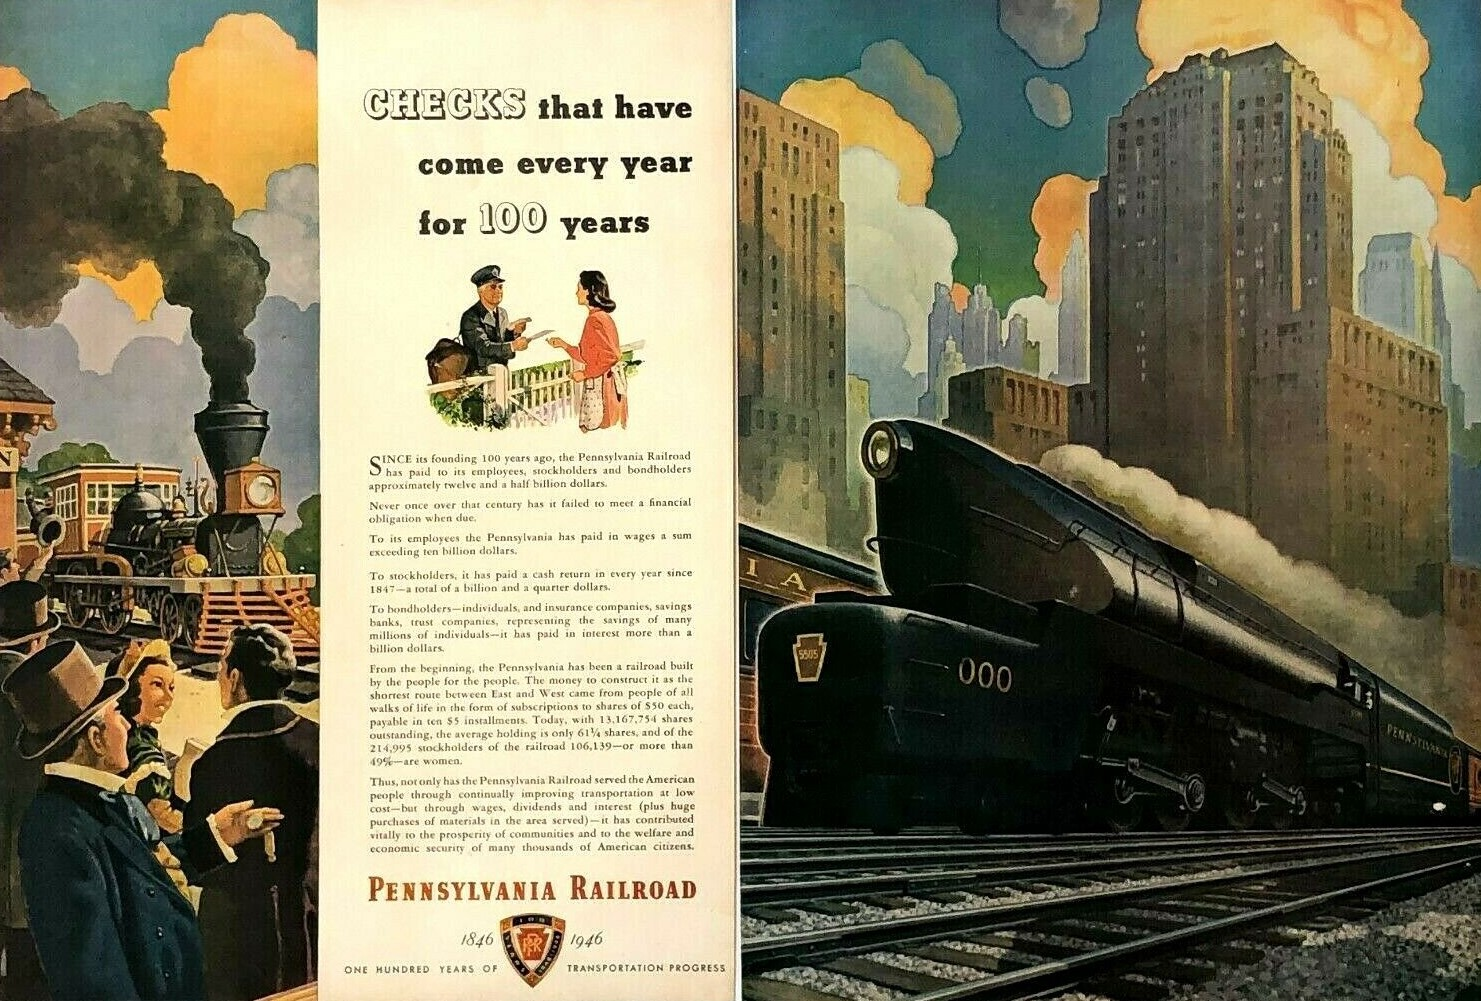 1946 Pennsylvania Railroad